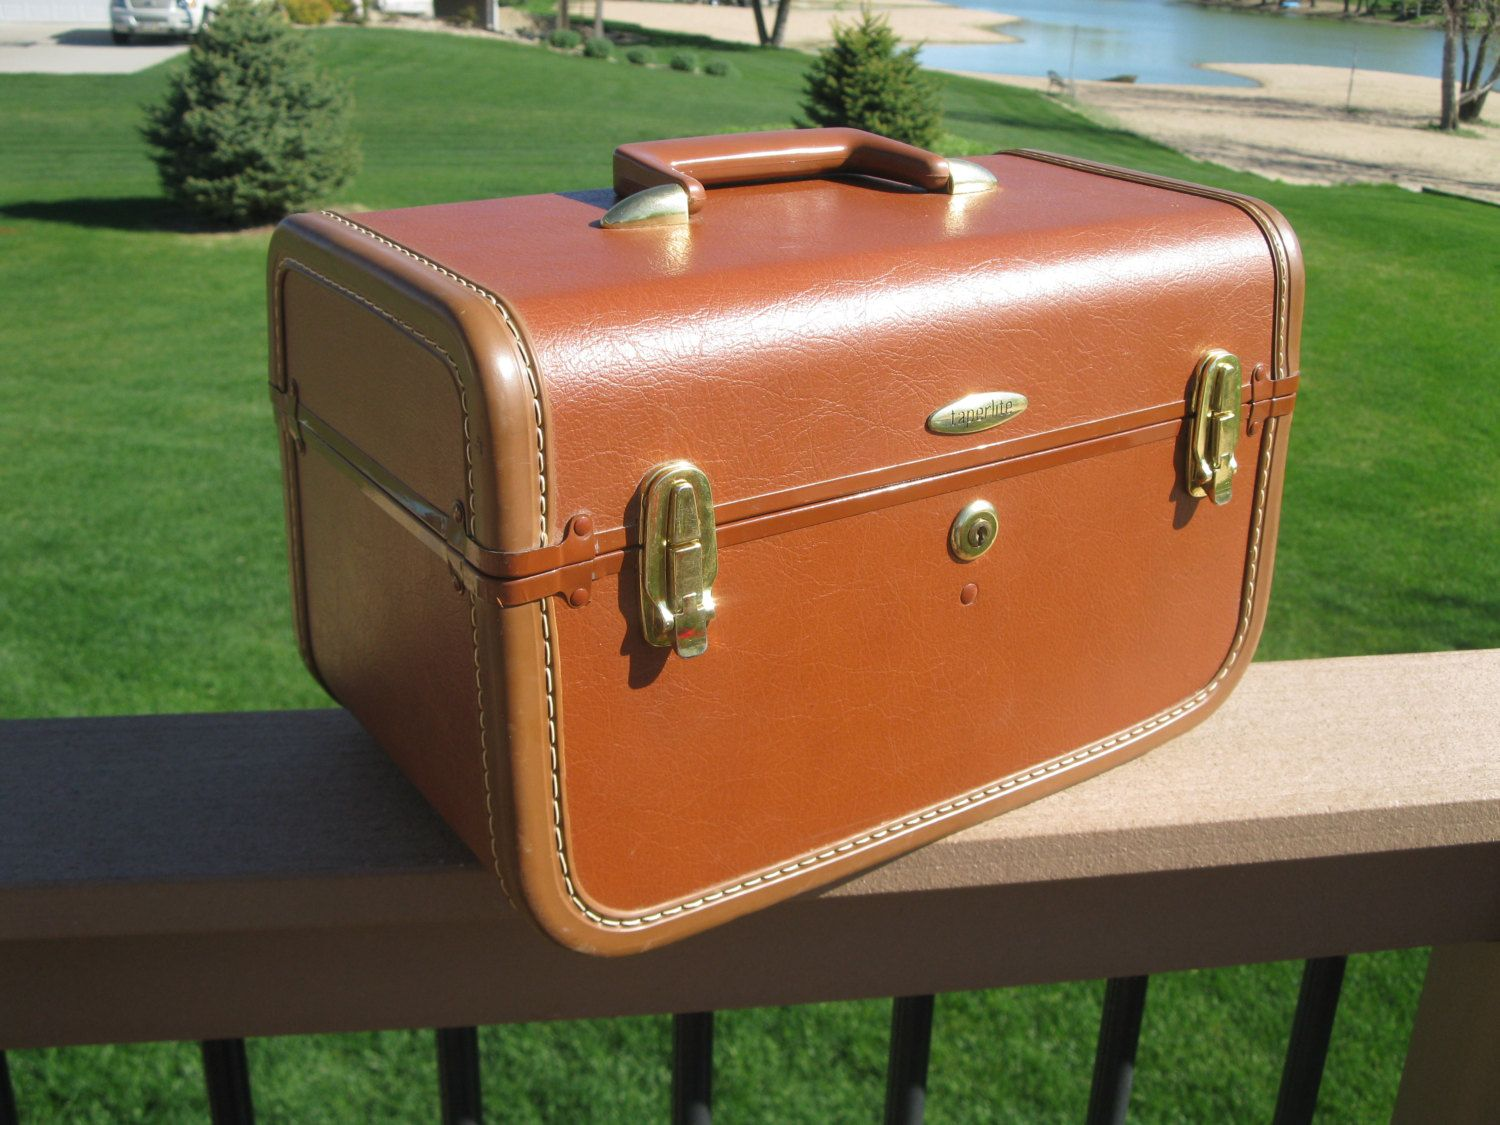 1950s Taperlite train case with (rare) TRAY OXBLOOD RED